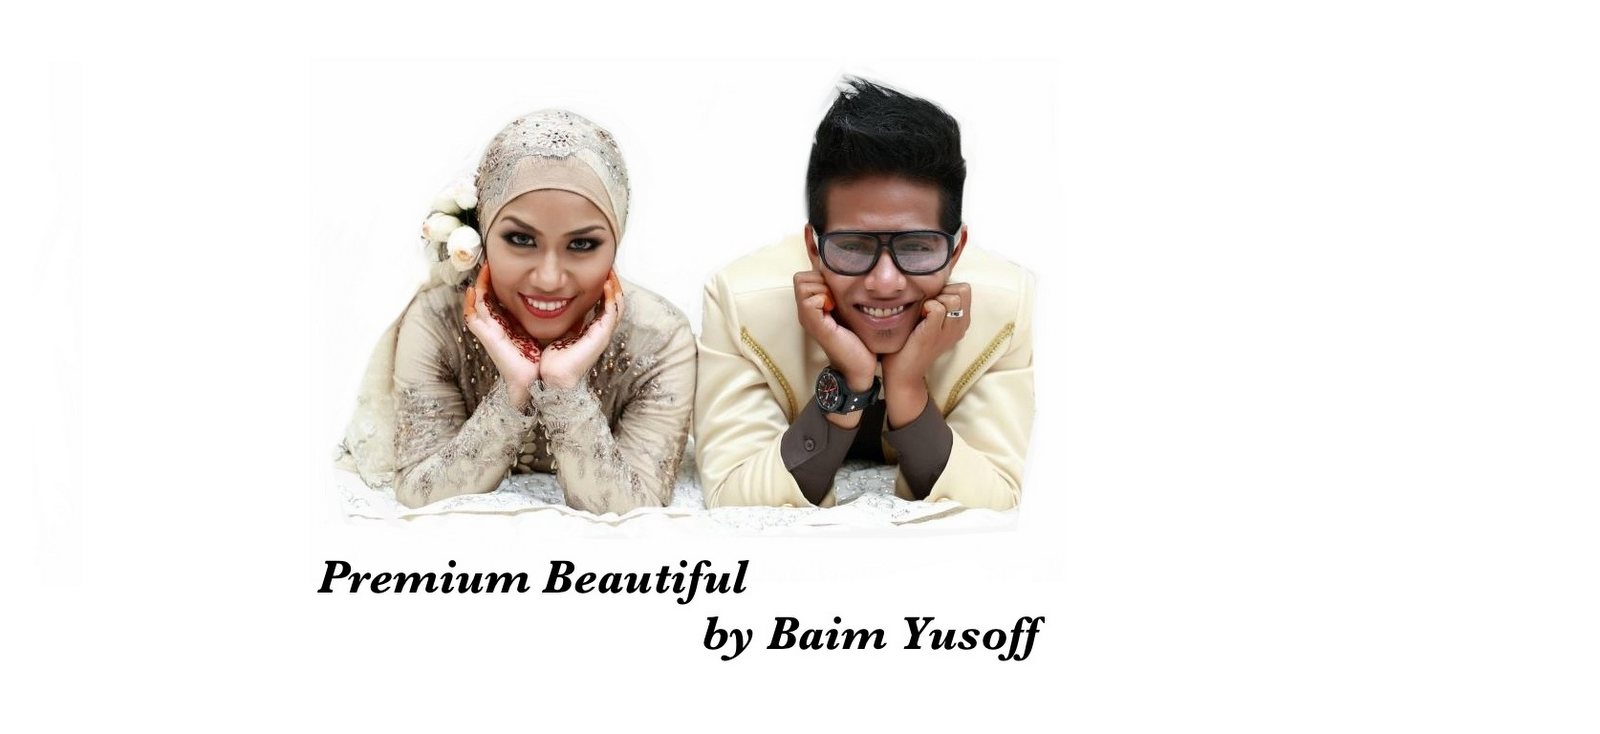 PREMIUM BEAUTIFUL by BAIM YUSOFF